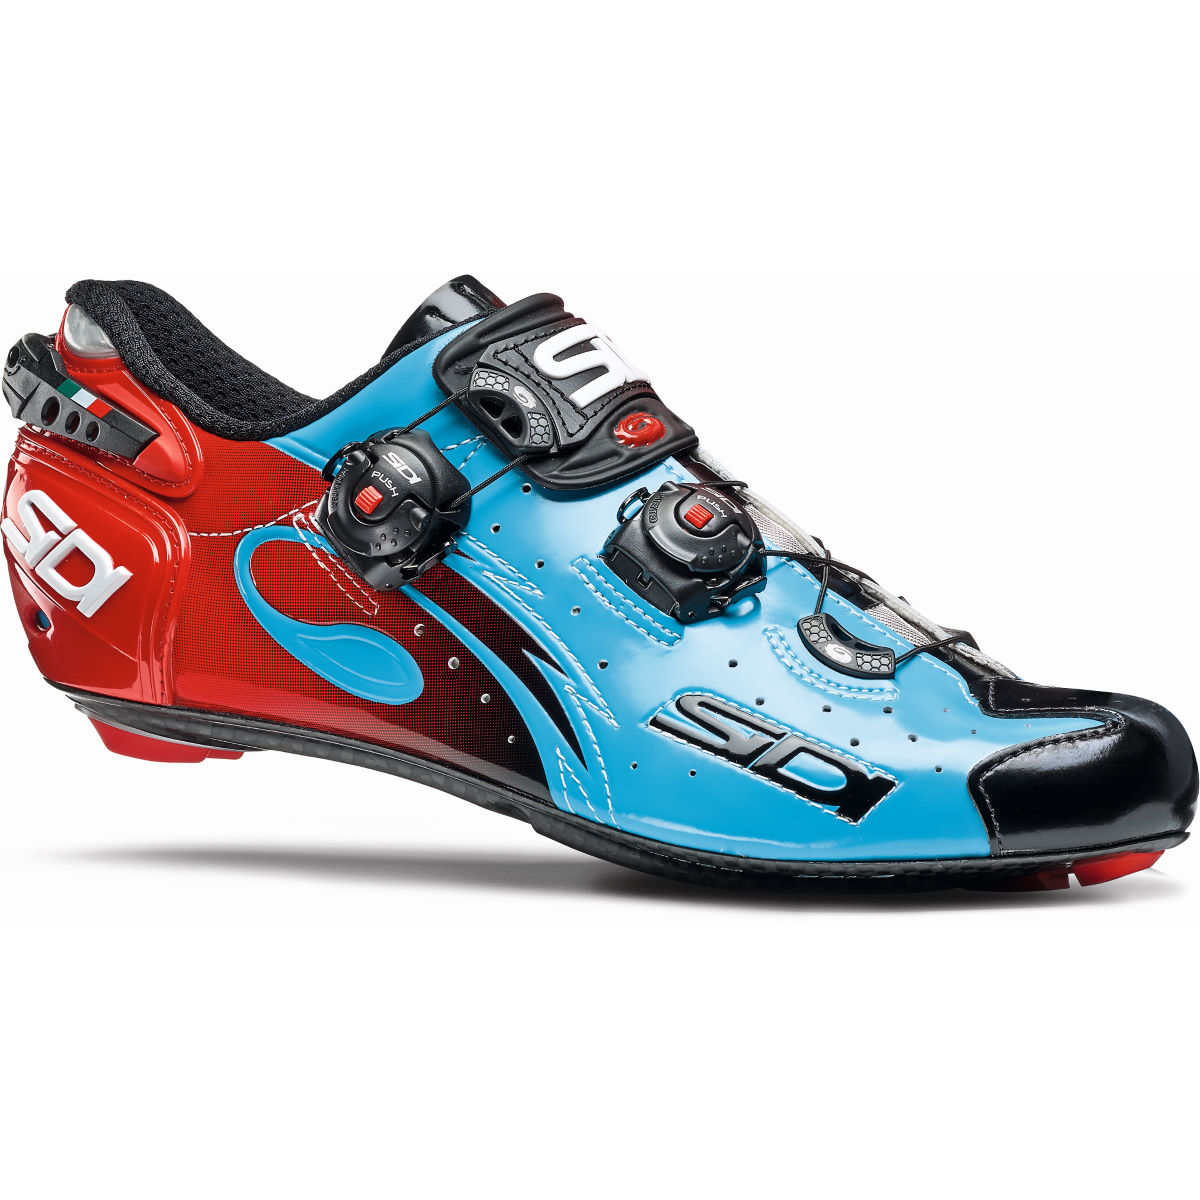 Sidi Wire Carbon Vernice Road Shoes - 47 Blue/Black | Road Shoes